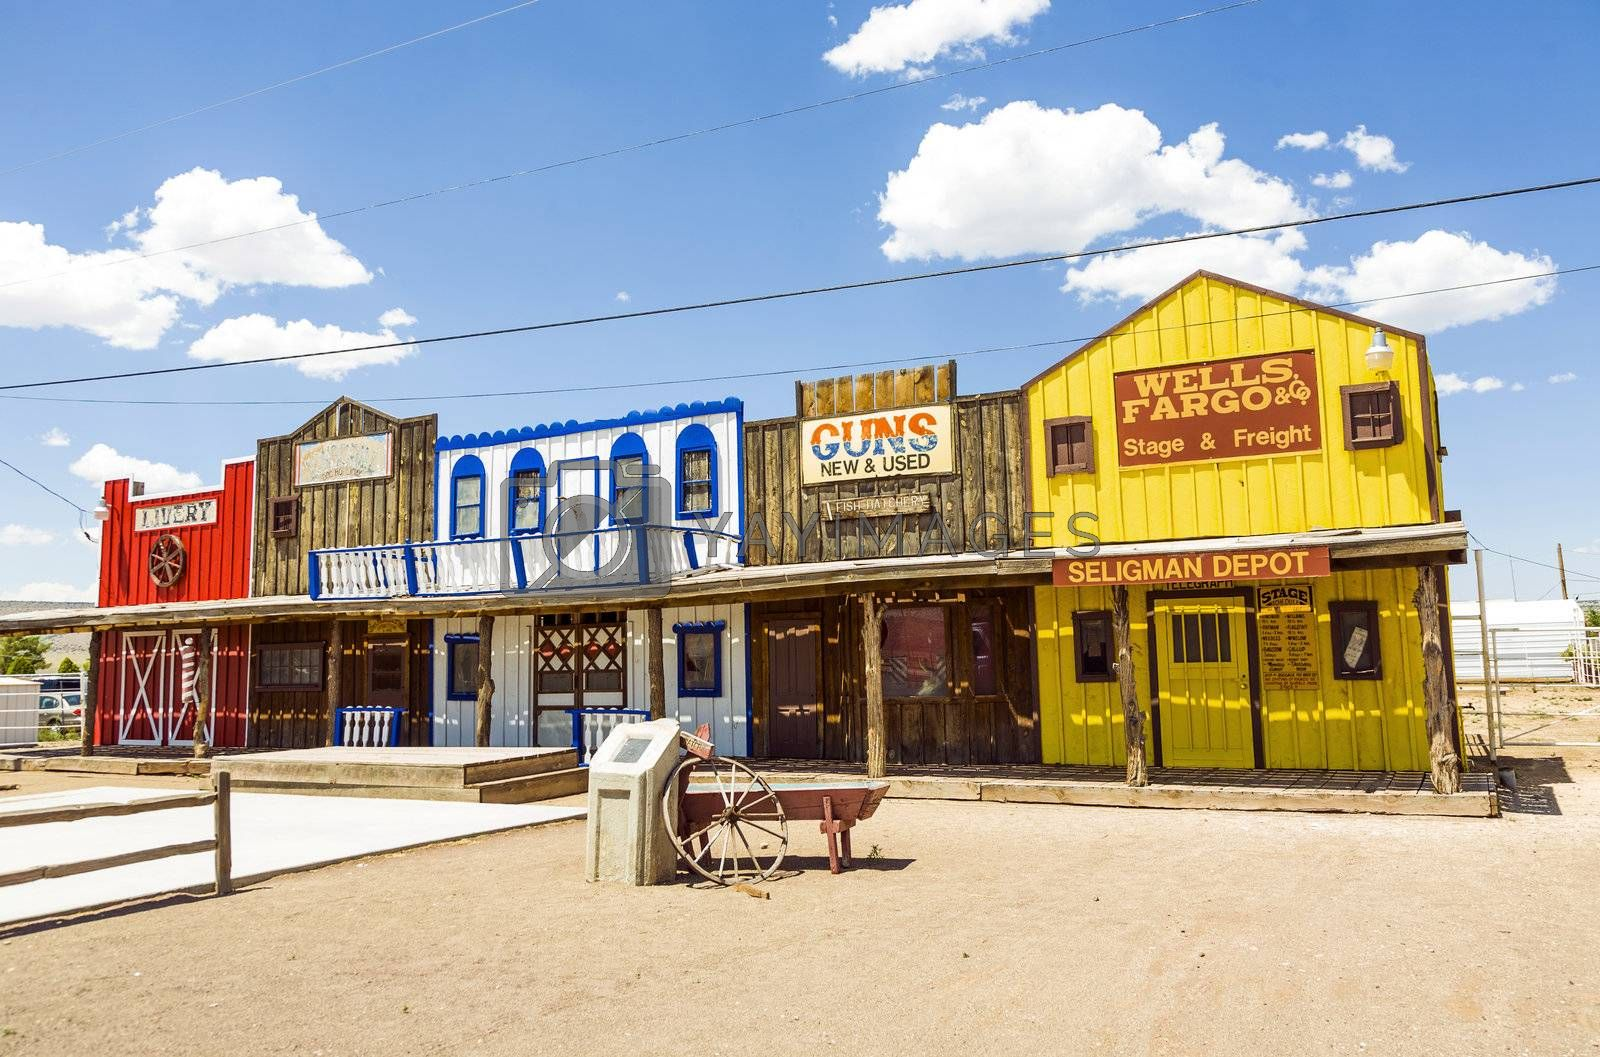 SELIGMAN, USA - JUL 8: The Historic Seligman depot on July  8, 2008 in Seligman, AZ, USA on Historic Route 66. Built in 1904, today, Seligmans depot is the best original western facade all over Route 66.